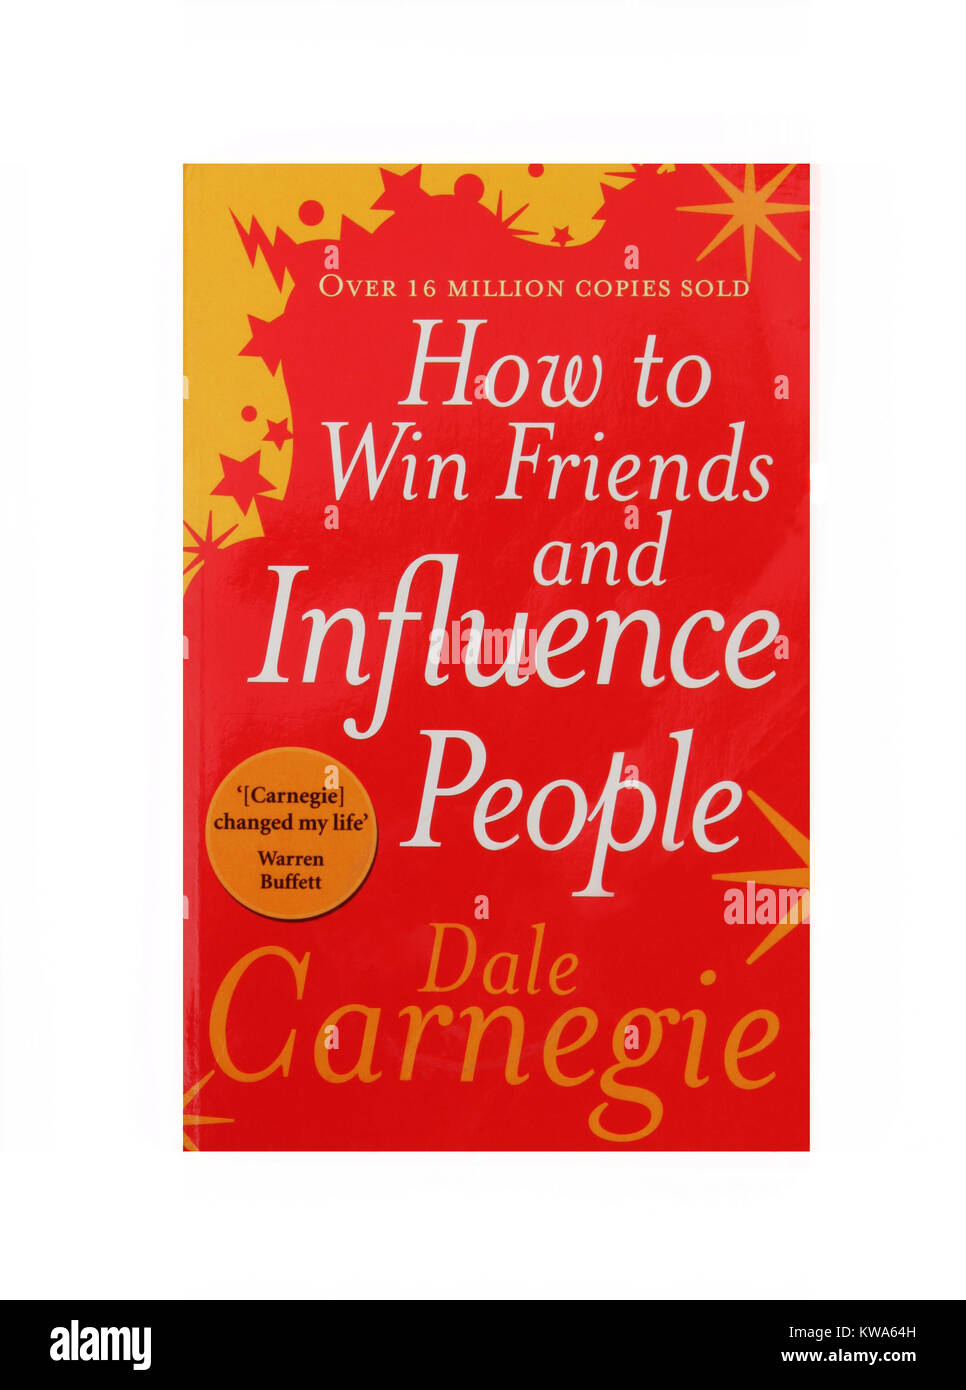 The book, How to win friends and influence people by Dale Carnegie - Stock Image